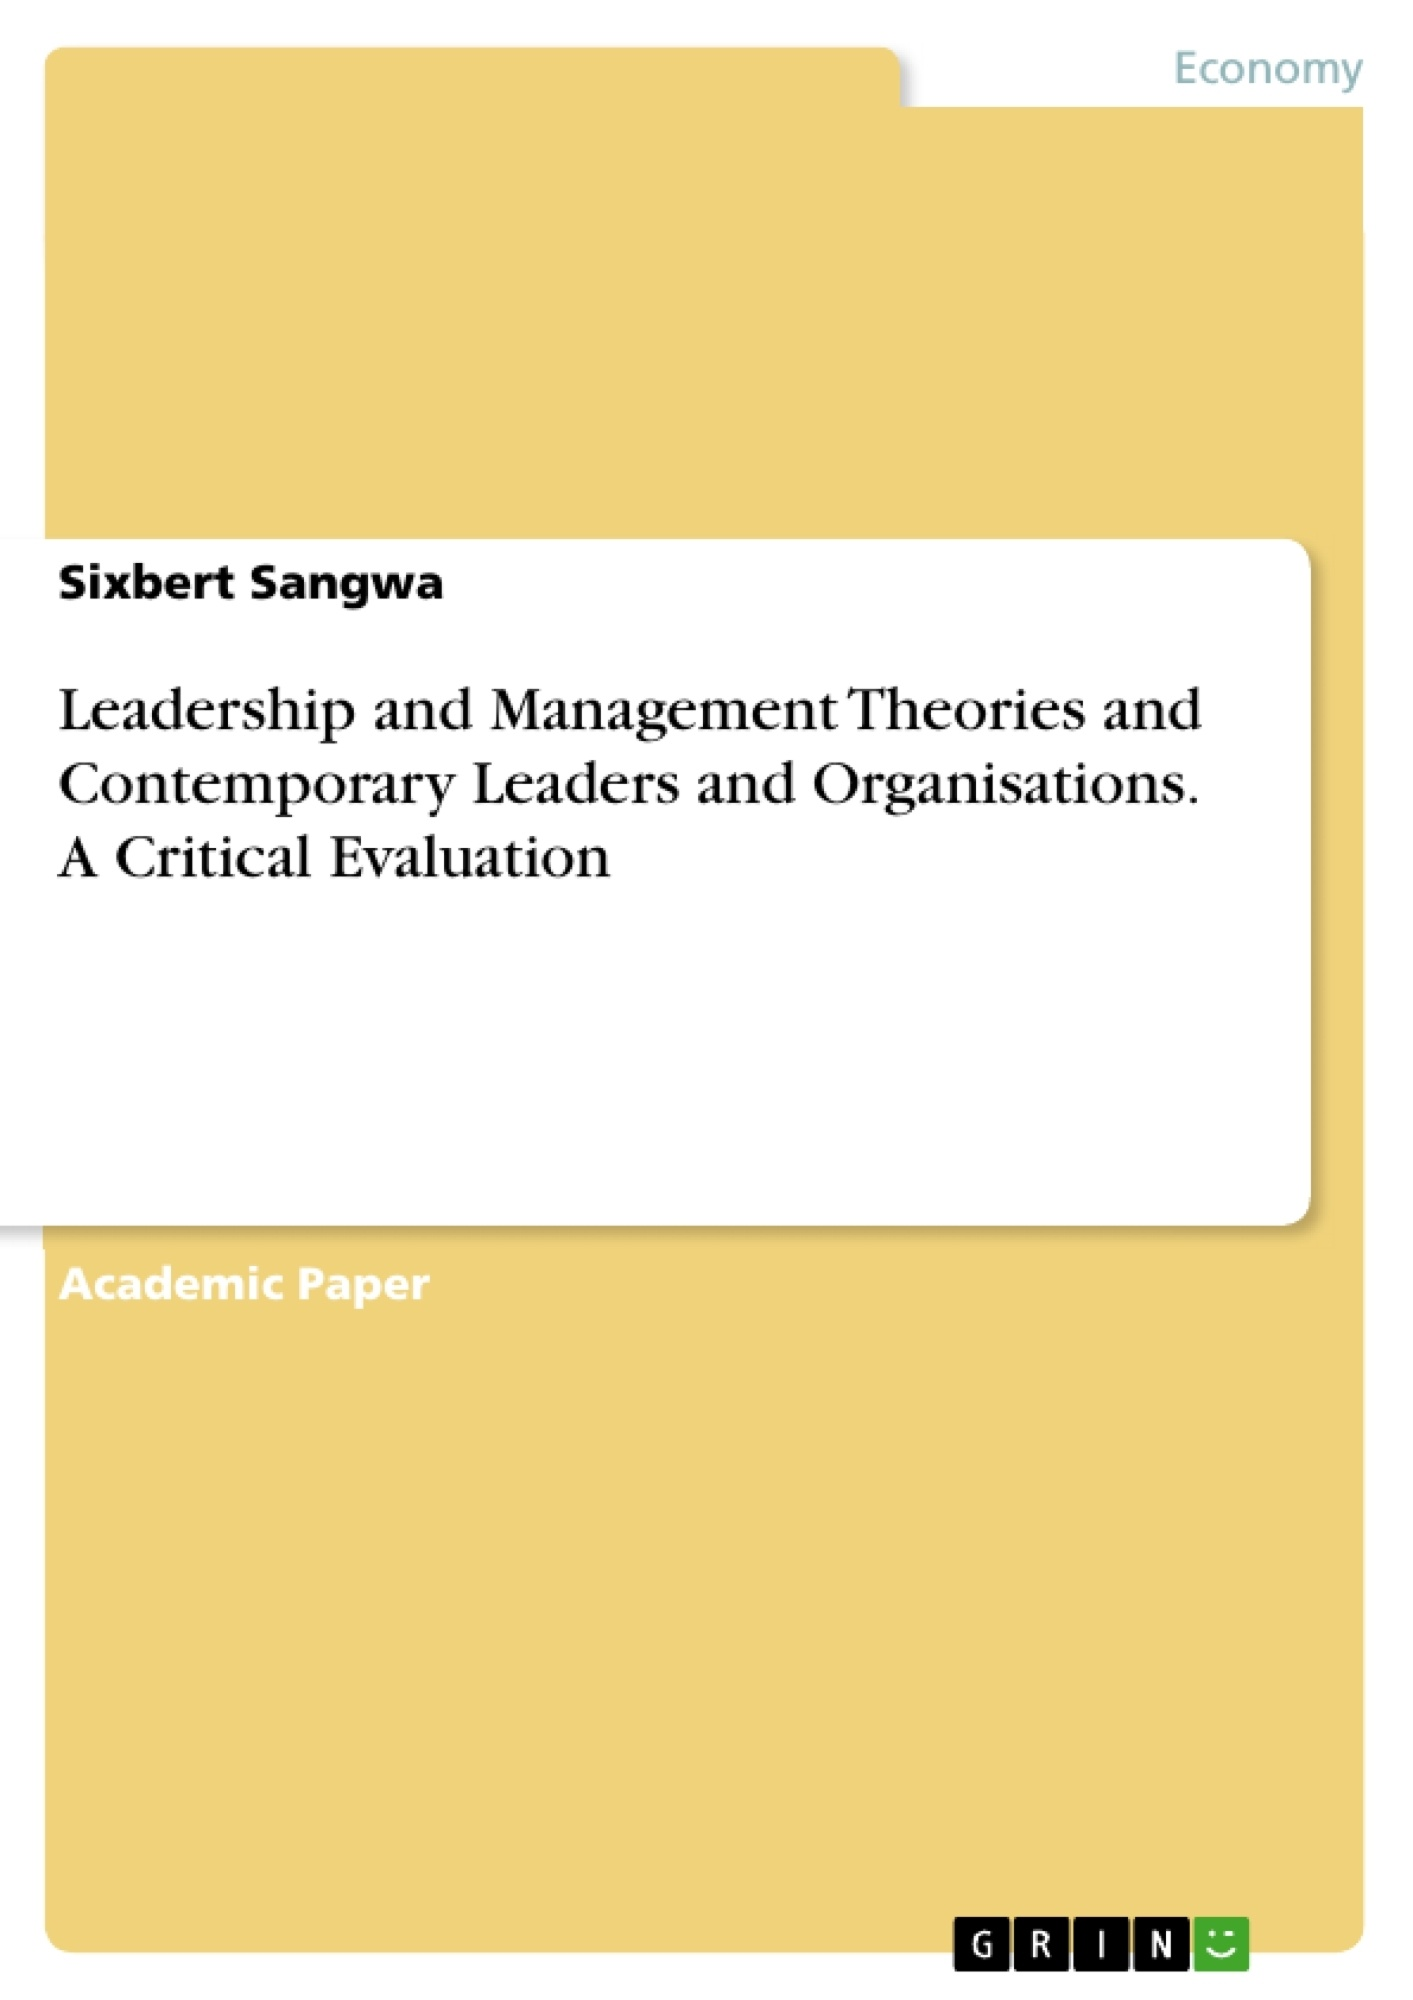 Title: Leadership and Management Theories and Contemporary Leaders and Organisations. A Critical Evaluation